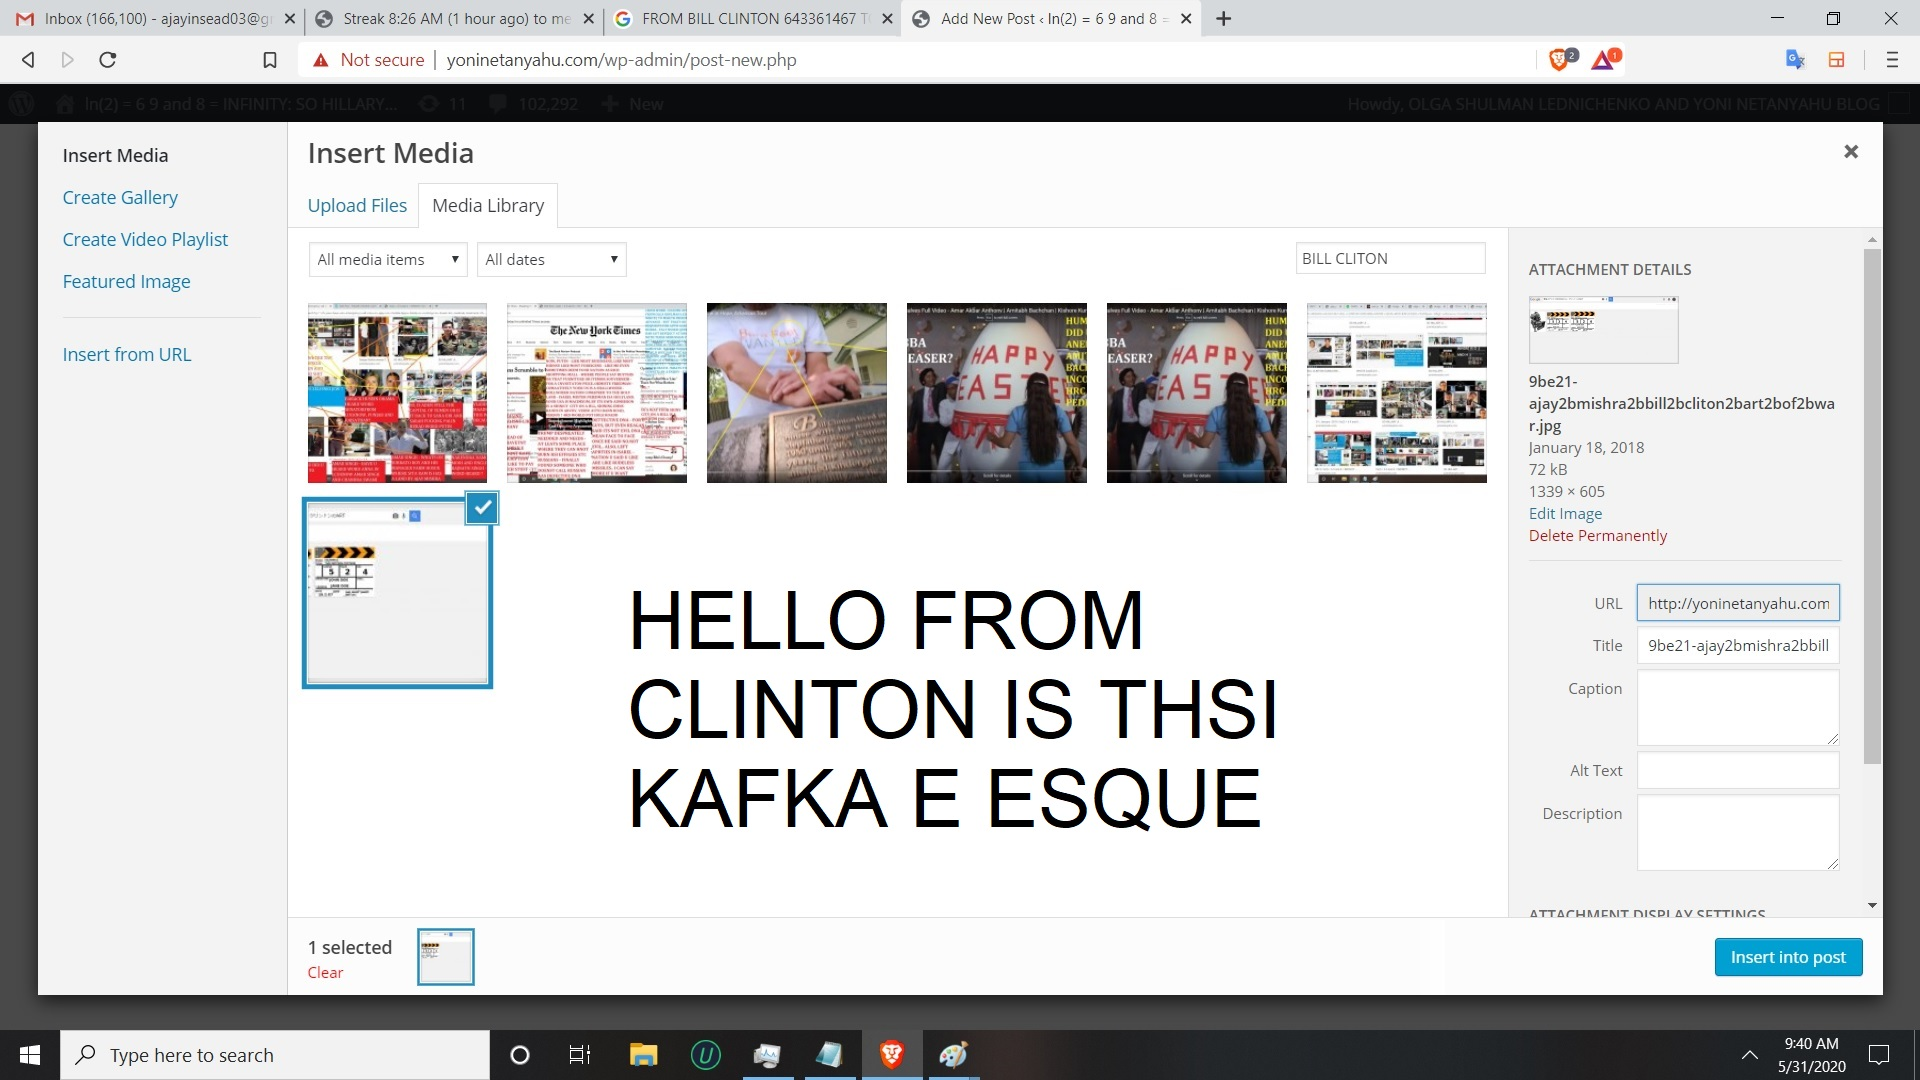 HELLO FROM CLINTON IS THSI KASFAKE ESQUE